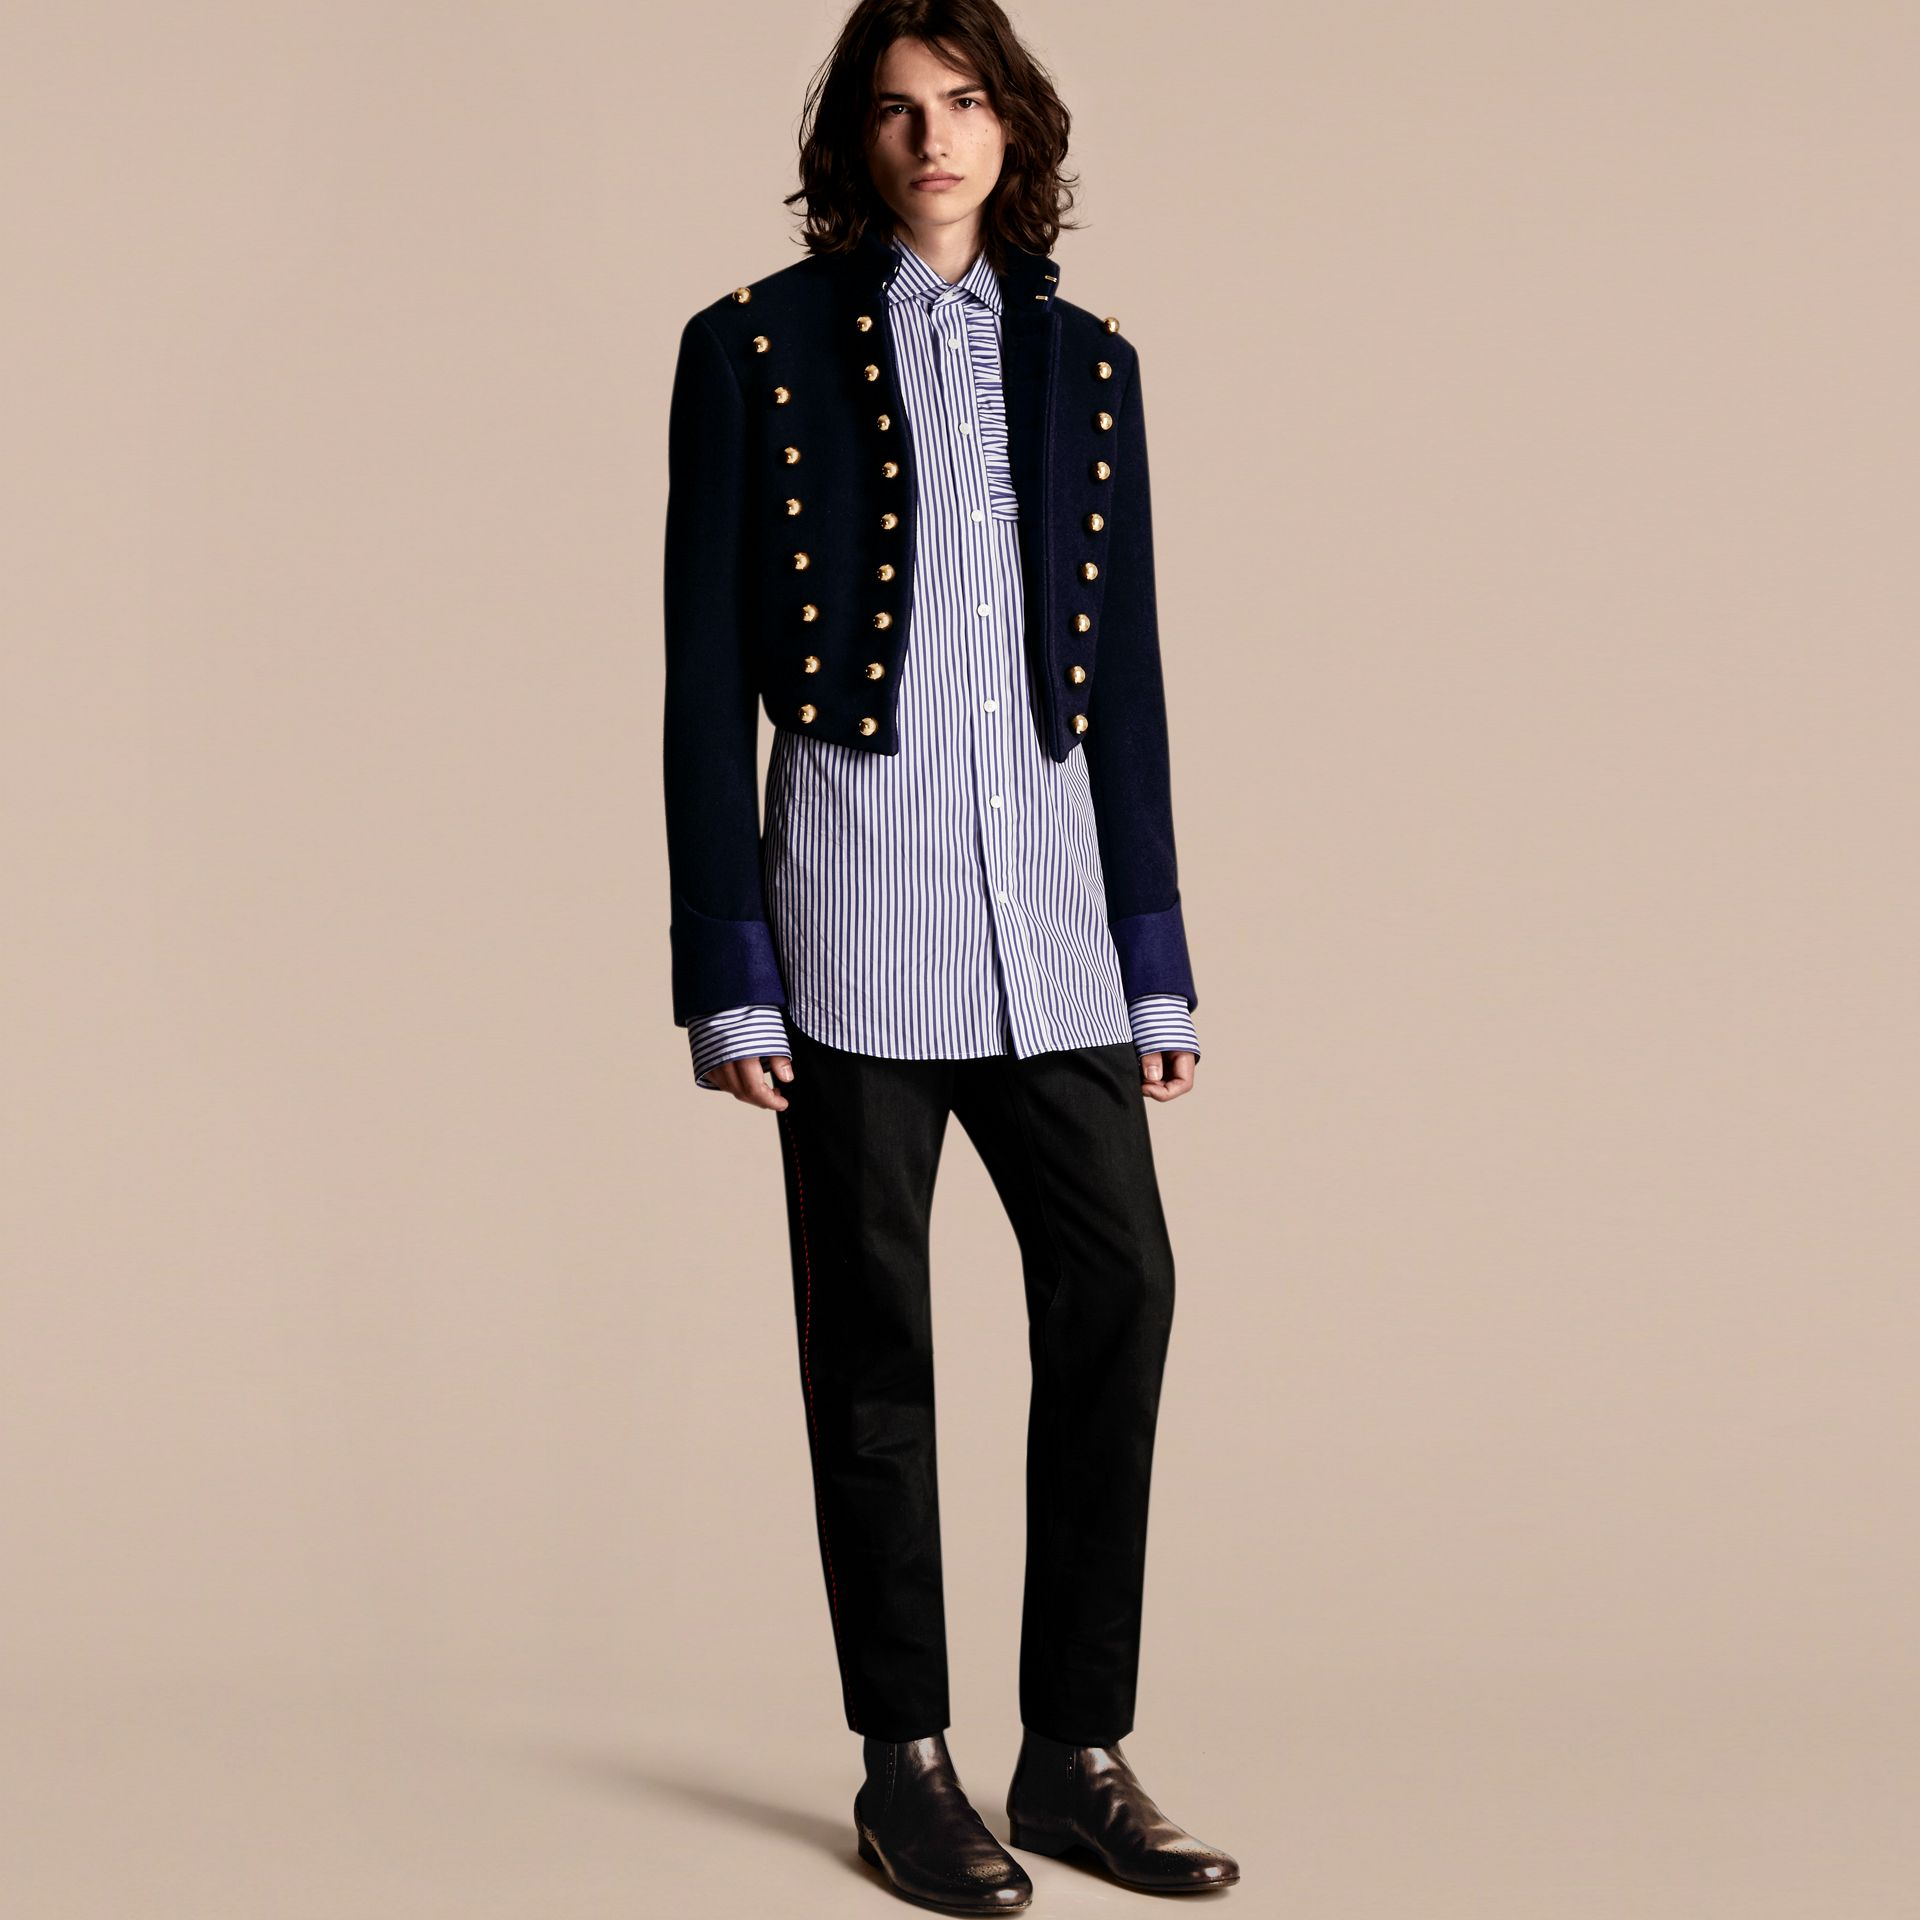 The Parade Jacket - gallery image 1